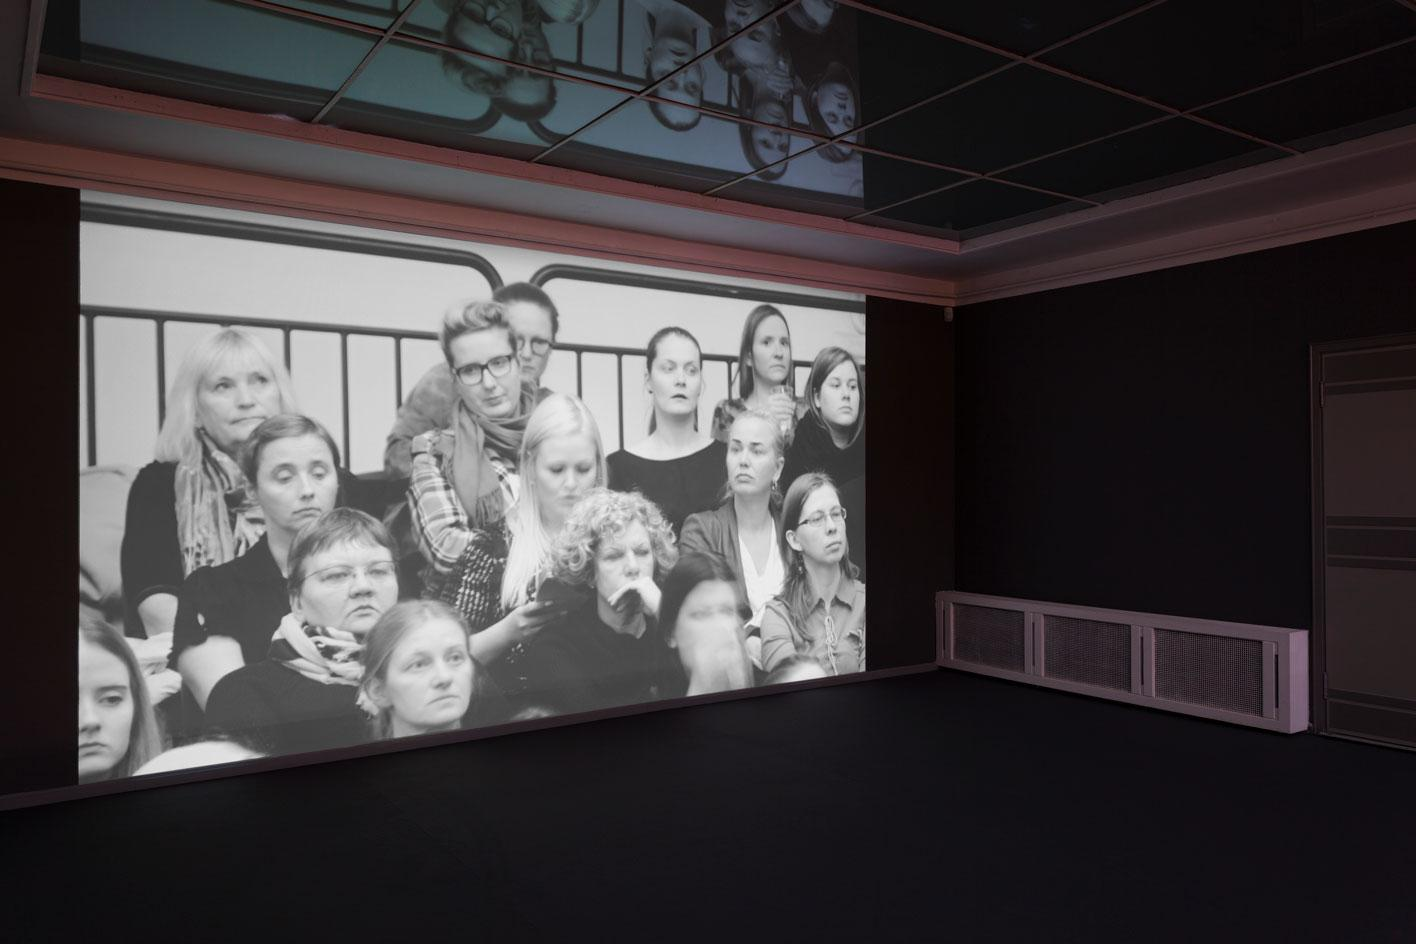 Exhibition view of Flo Kasearu, 'Cut Out of Life', at Tallinn Art Hall.